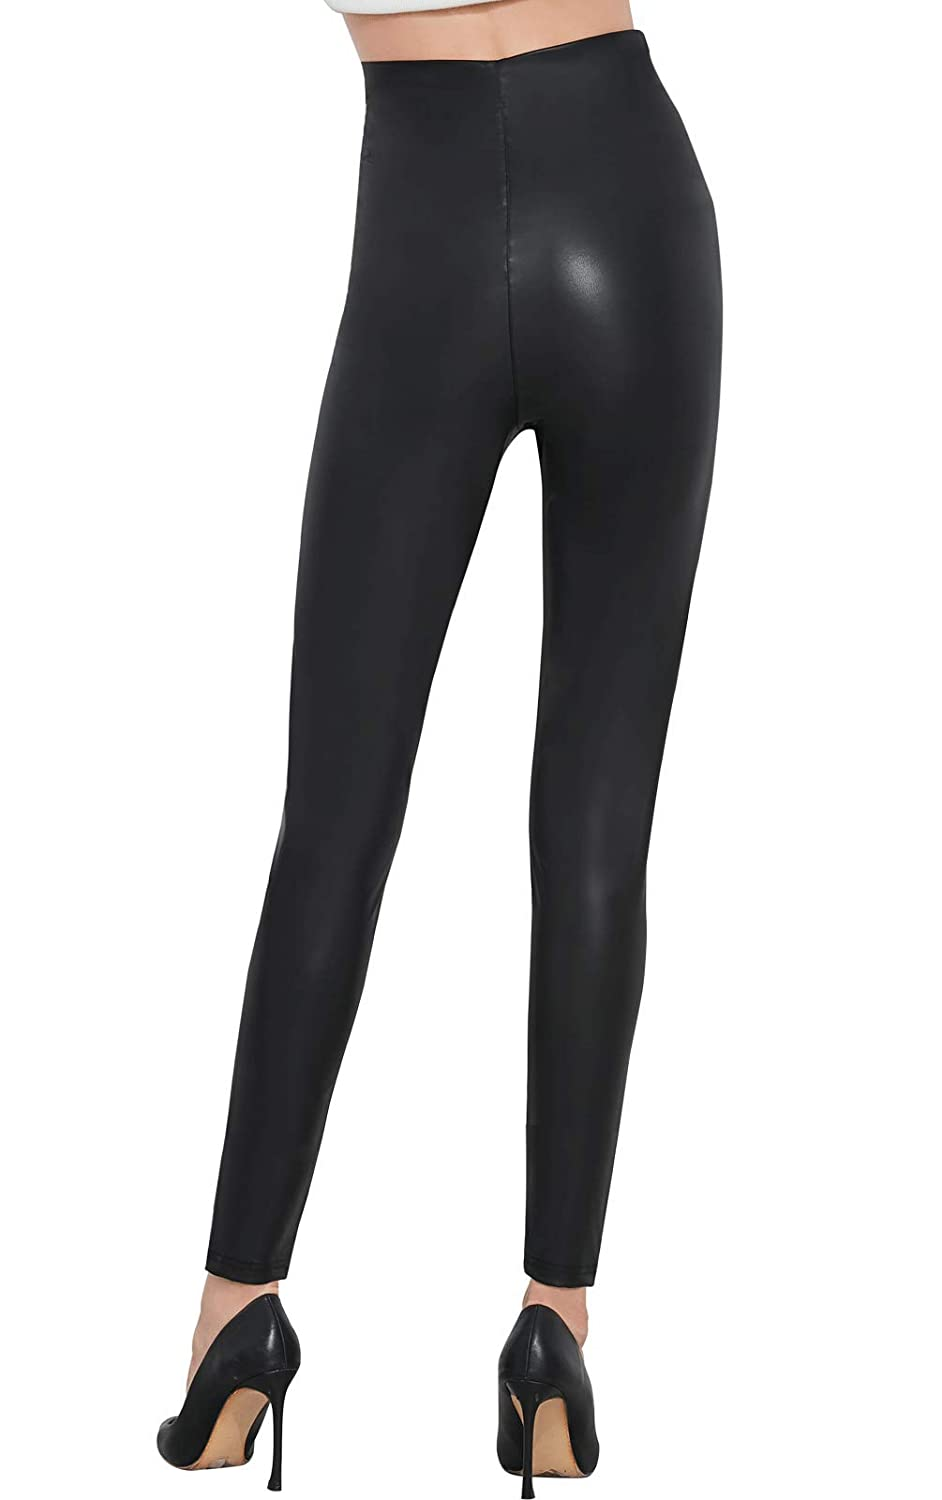 5d230e0d119 Pelisy Womens Faux Leather High Waisted Leggings Stretchy Skinny Leather  Pants at Amazon Women s Clothing store